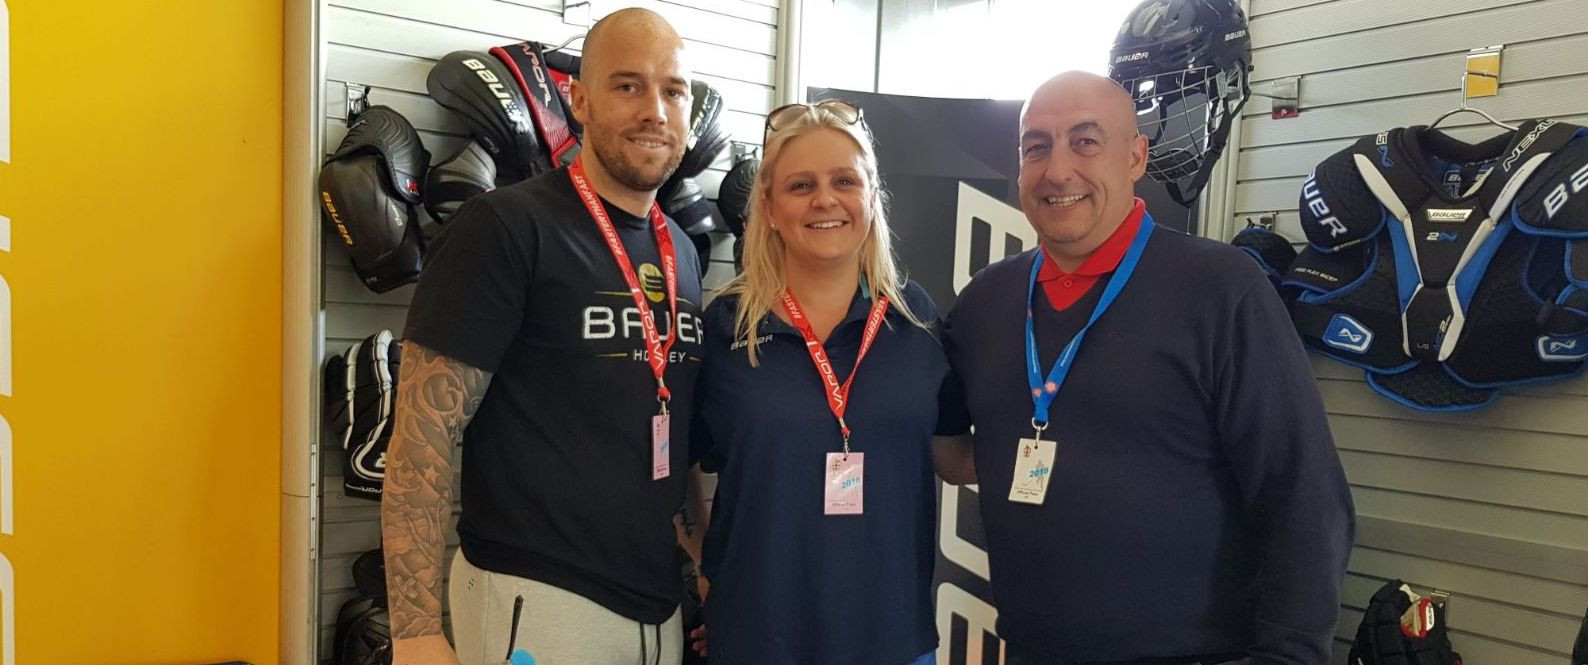 Bauer and Ice Hockey UK figures pictured at the unveiling ©Ice Hockey UK